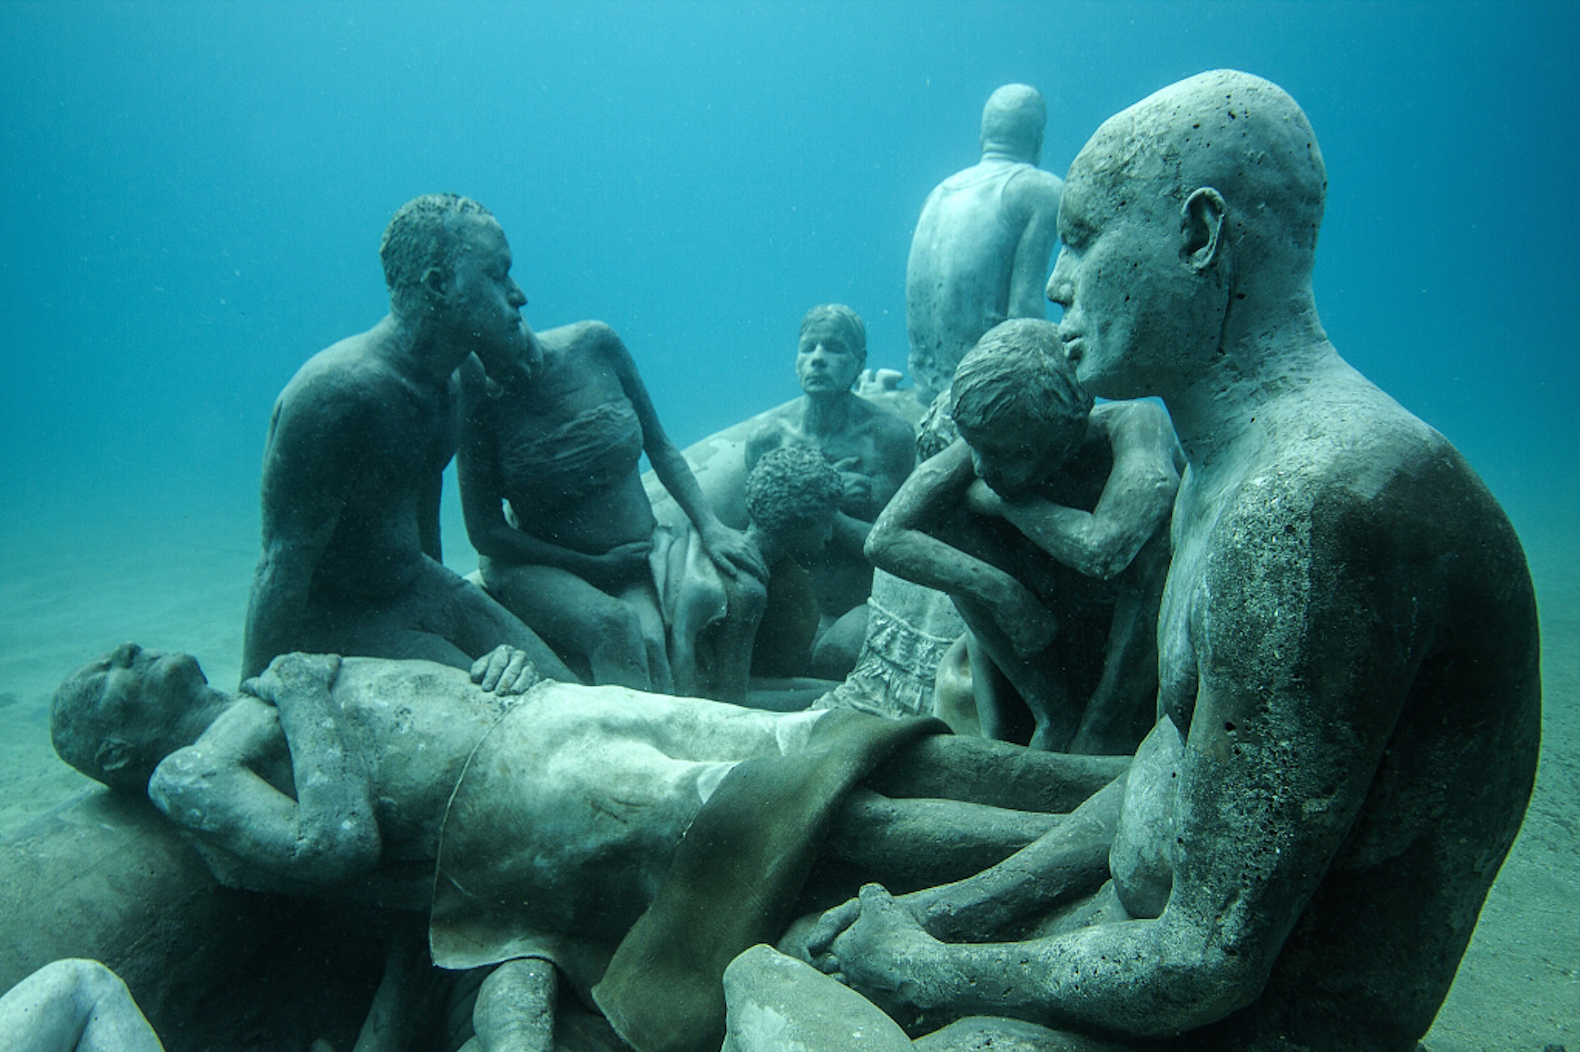 Haunting drowned figures send a chilling message in Europe's first undersea sculpture museum